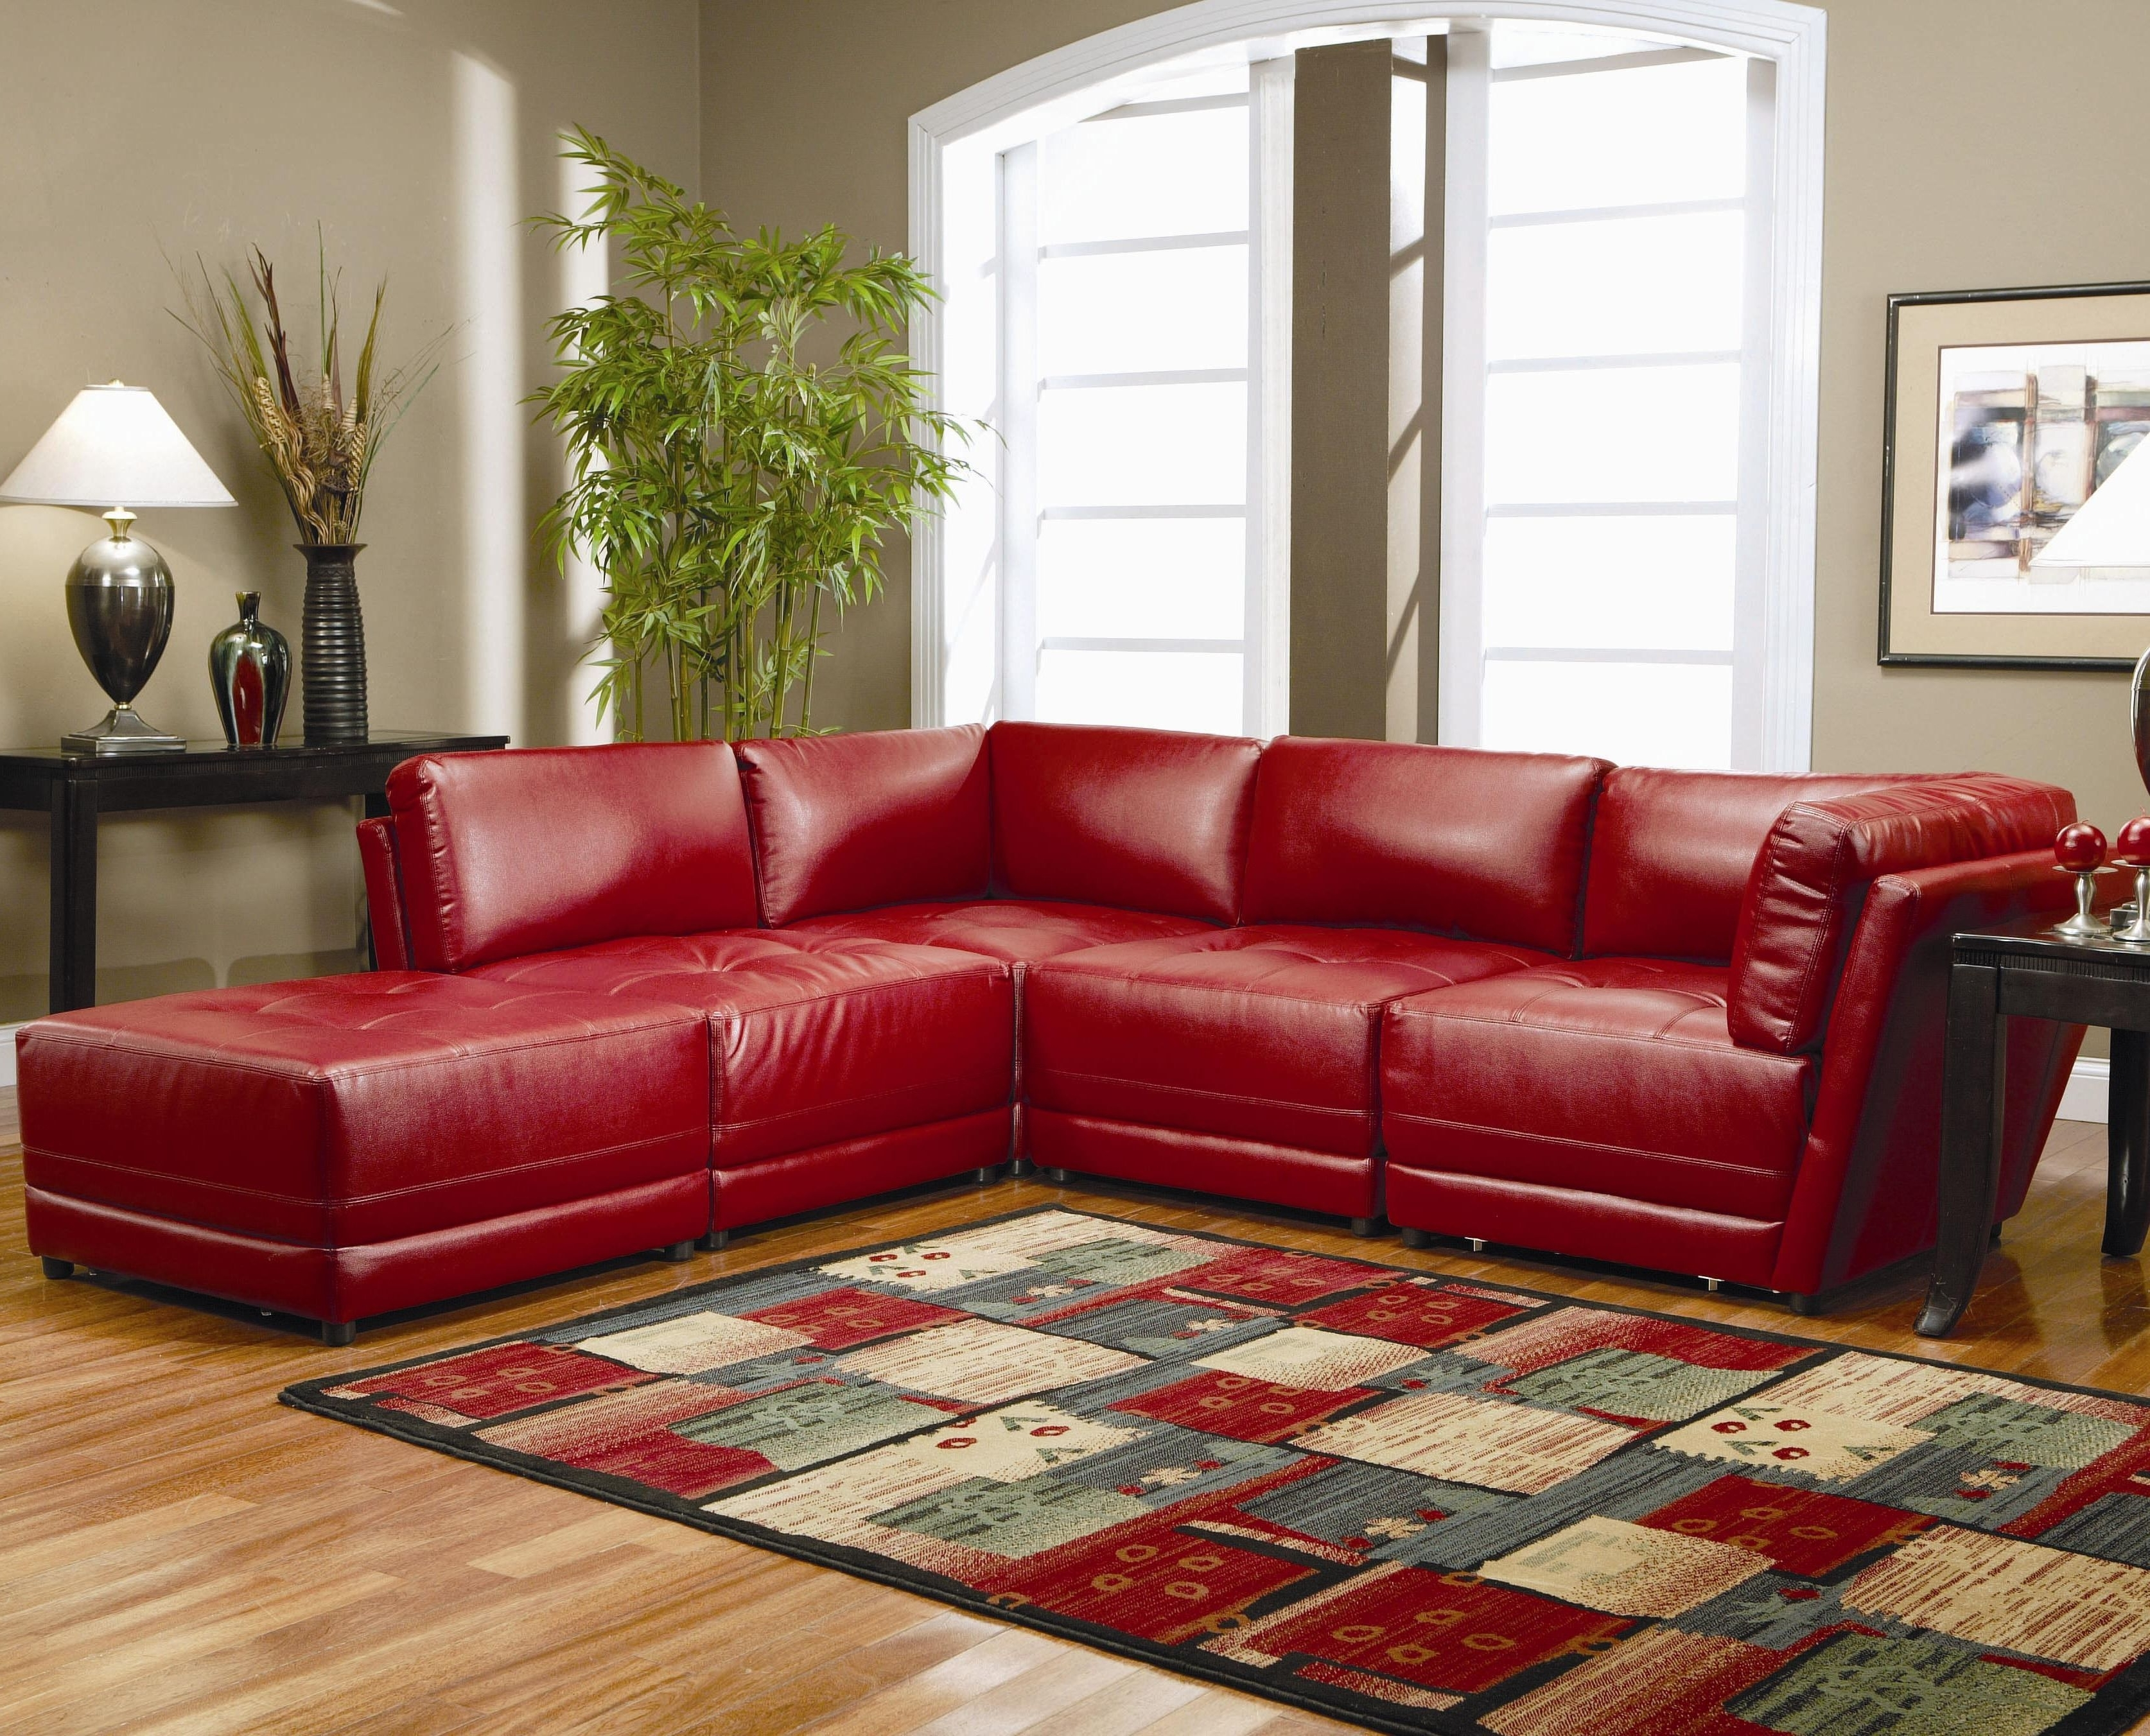 Red Leather Sectionals With Ottoman Intended For Well Known Sofas : Grey Sectional Couch Black Leather Couch Distressed (View 12 of 15)